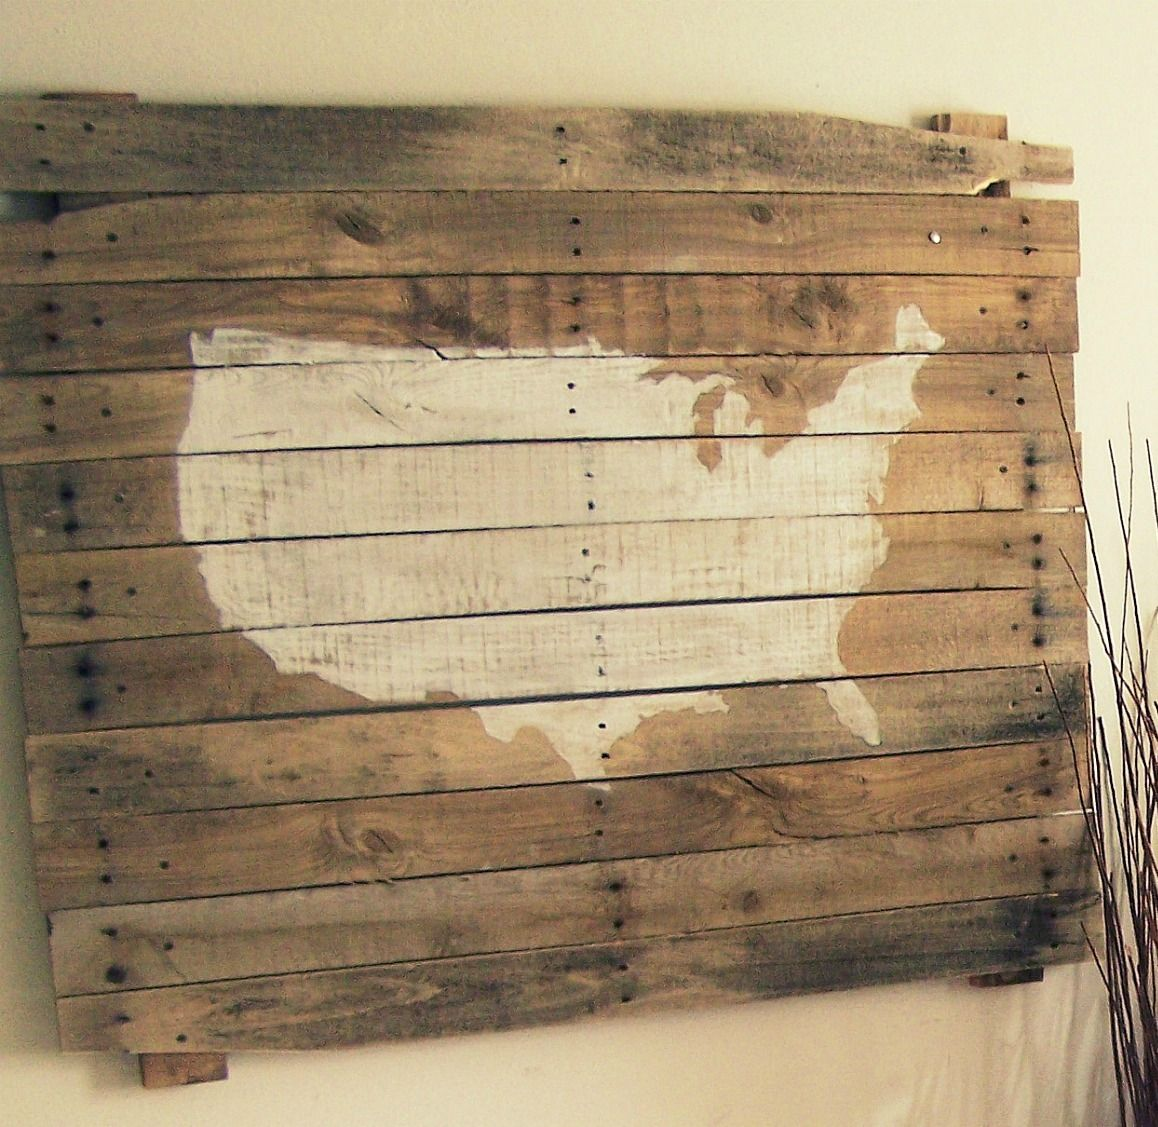 old pallet | Download Wallpaper Pallet furniture 1158x1127 kelly simon says 793rd ...